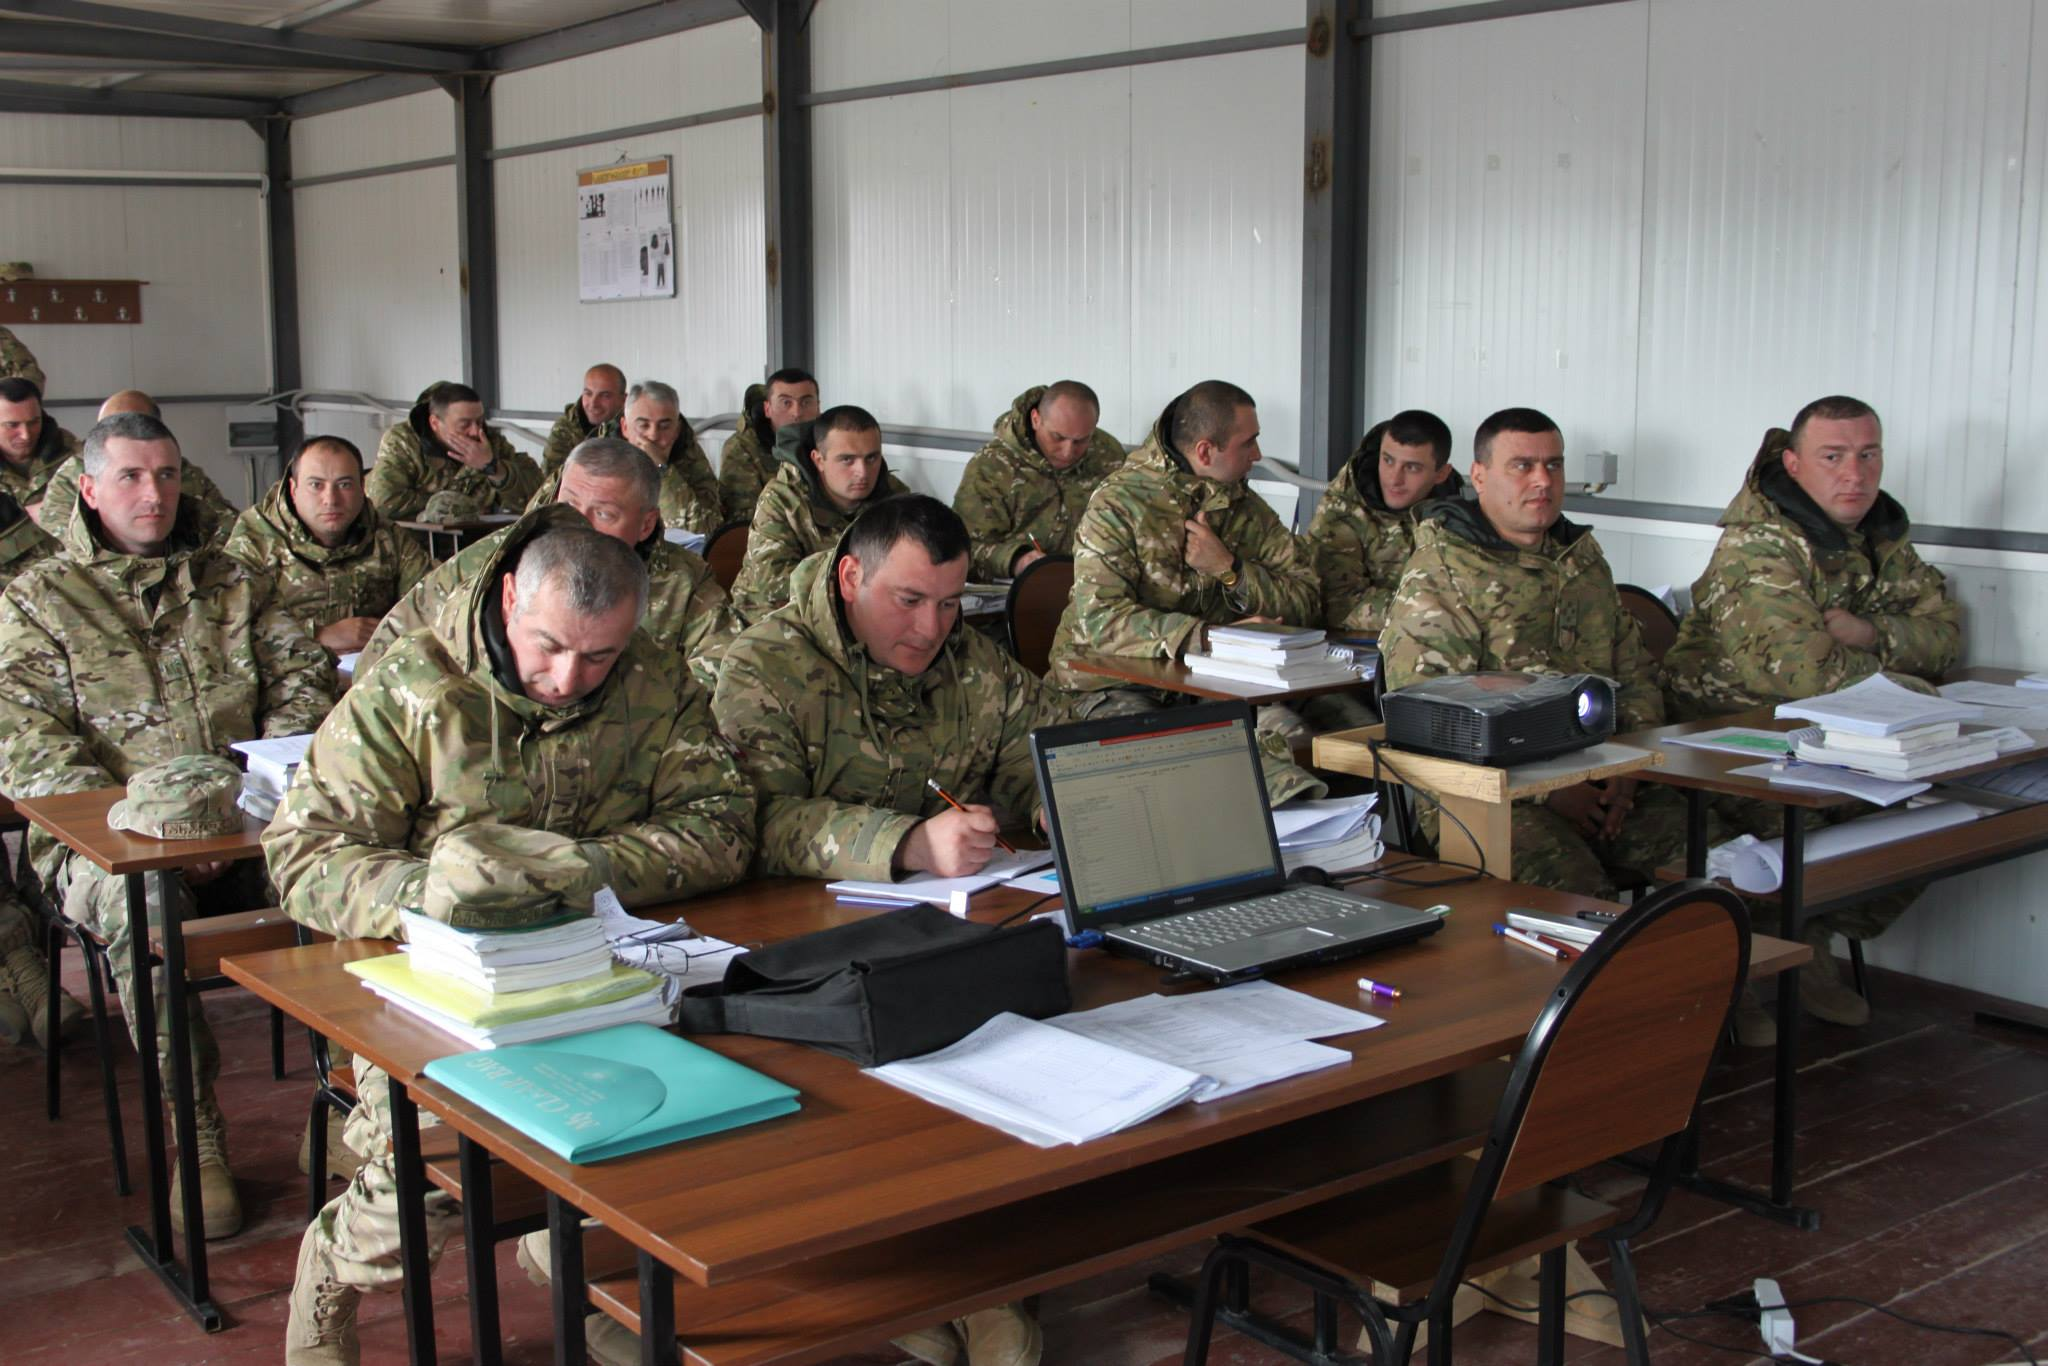 Nda junior officer school military police training course - Military officer training school ...